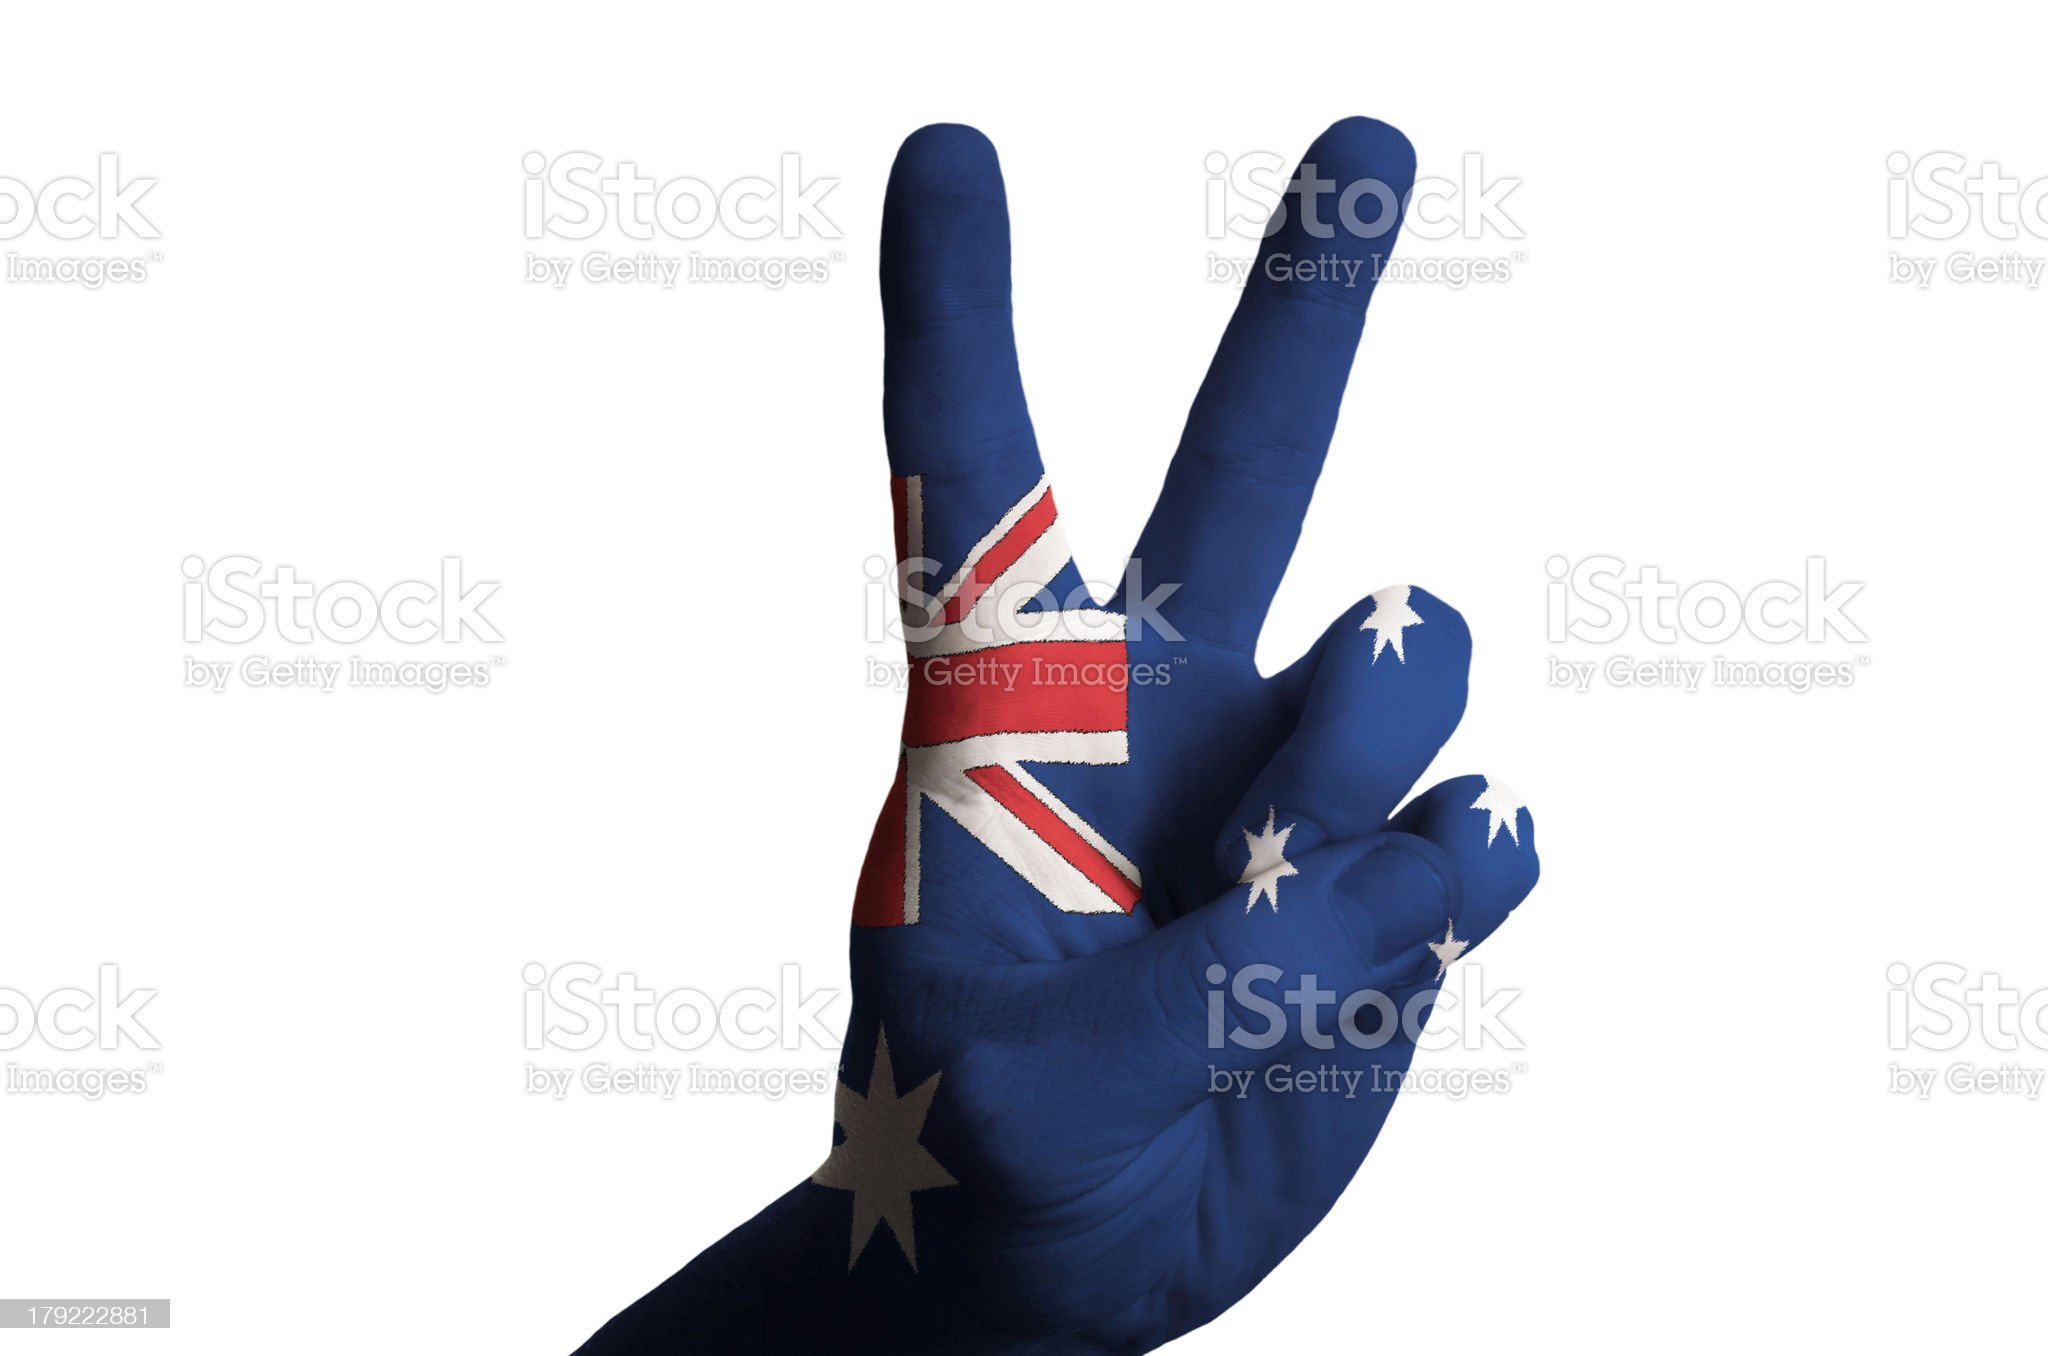 australia national flag two finger up gesture for victory royalty-free stock photo